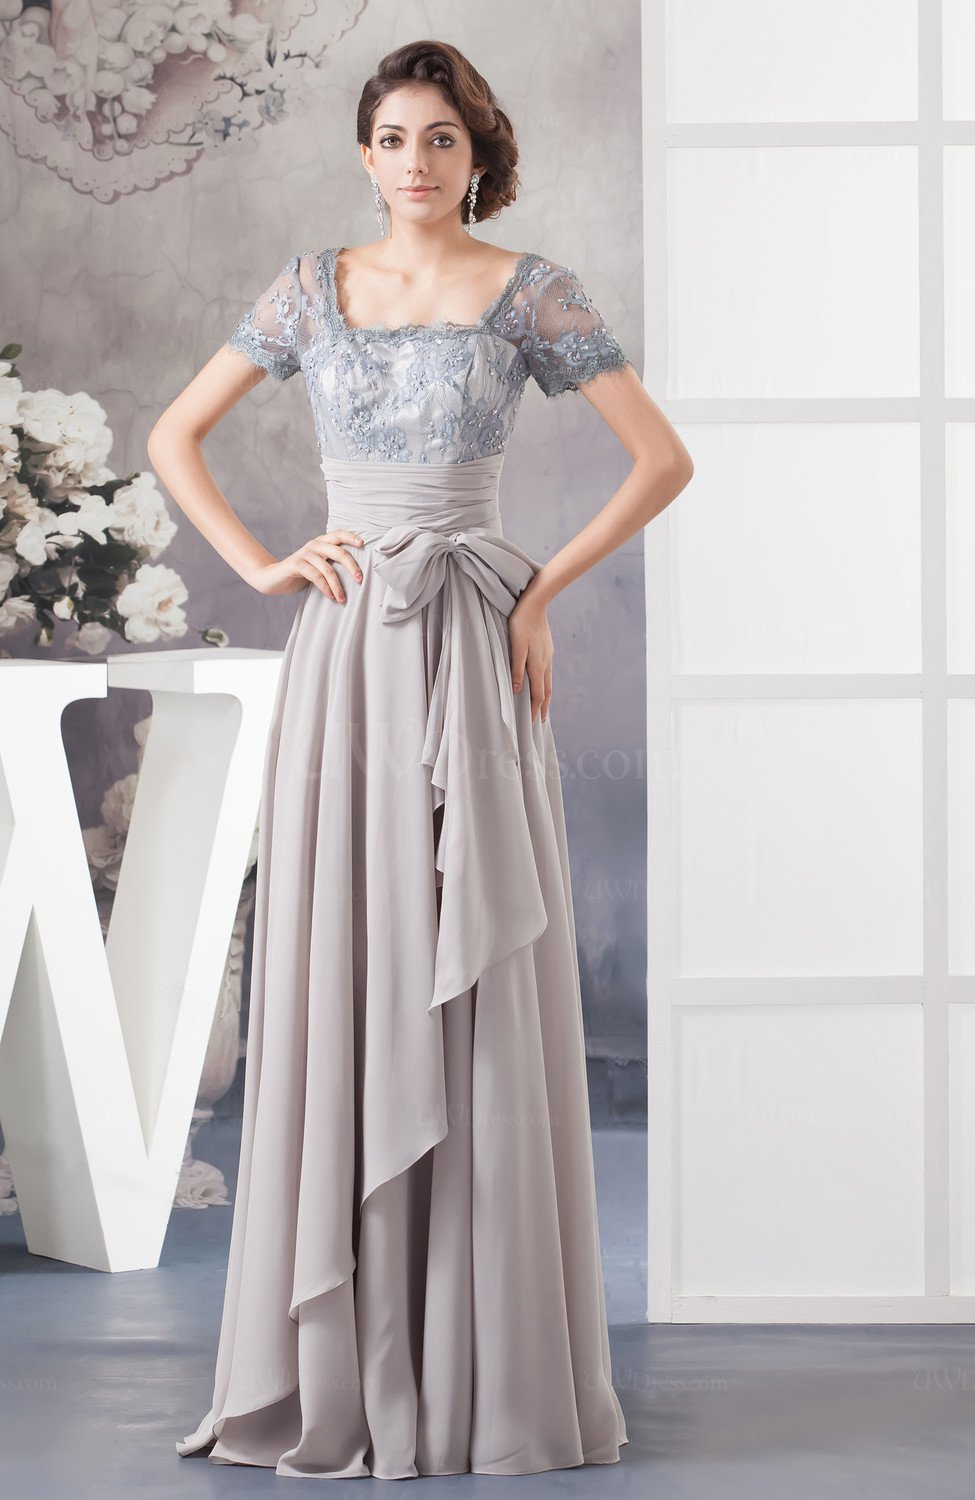 Lace Evening Dress with Sleeves Classy Chic Amazing Glamorous Fall ...